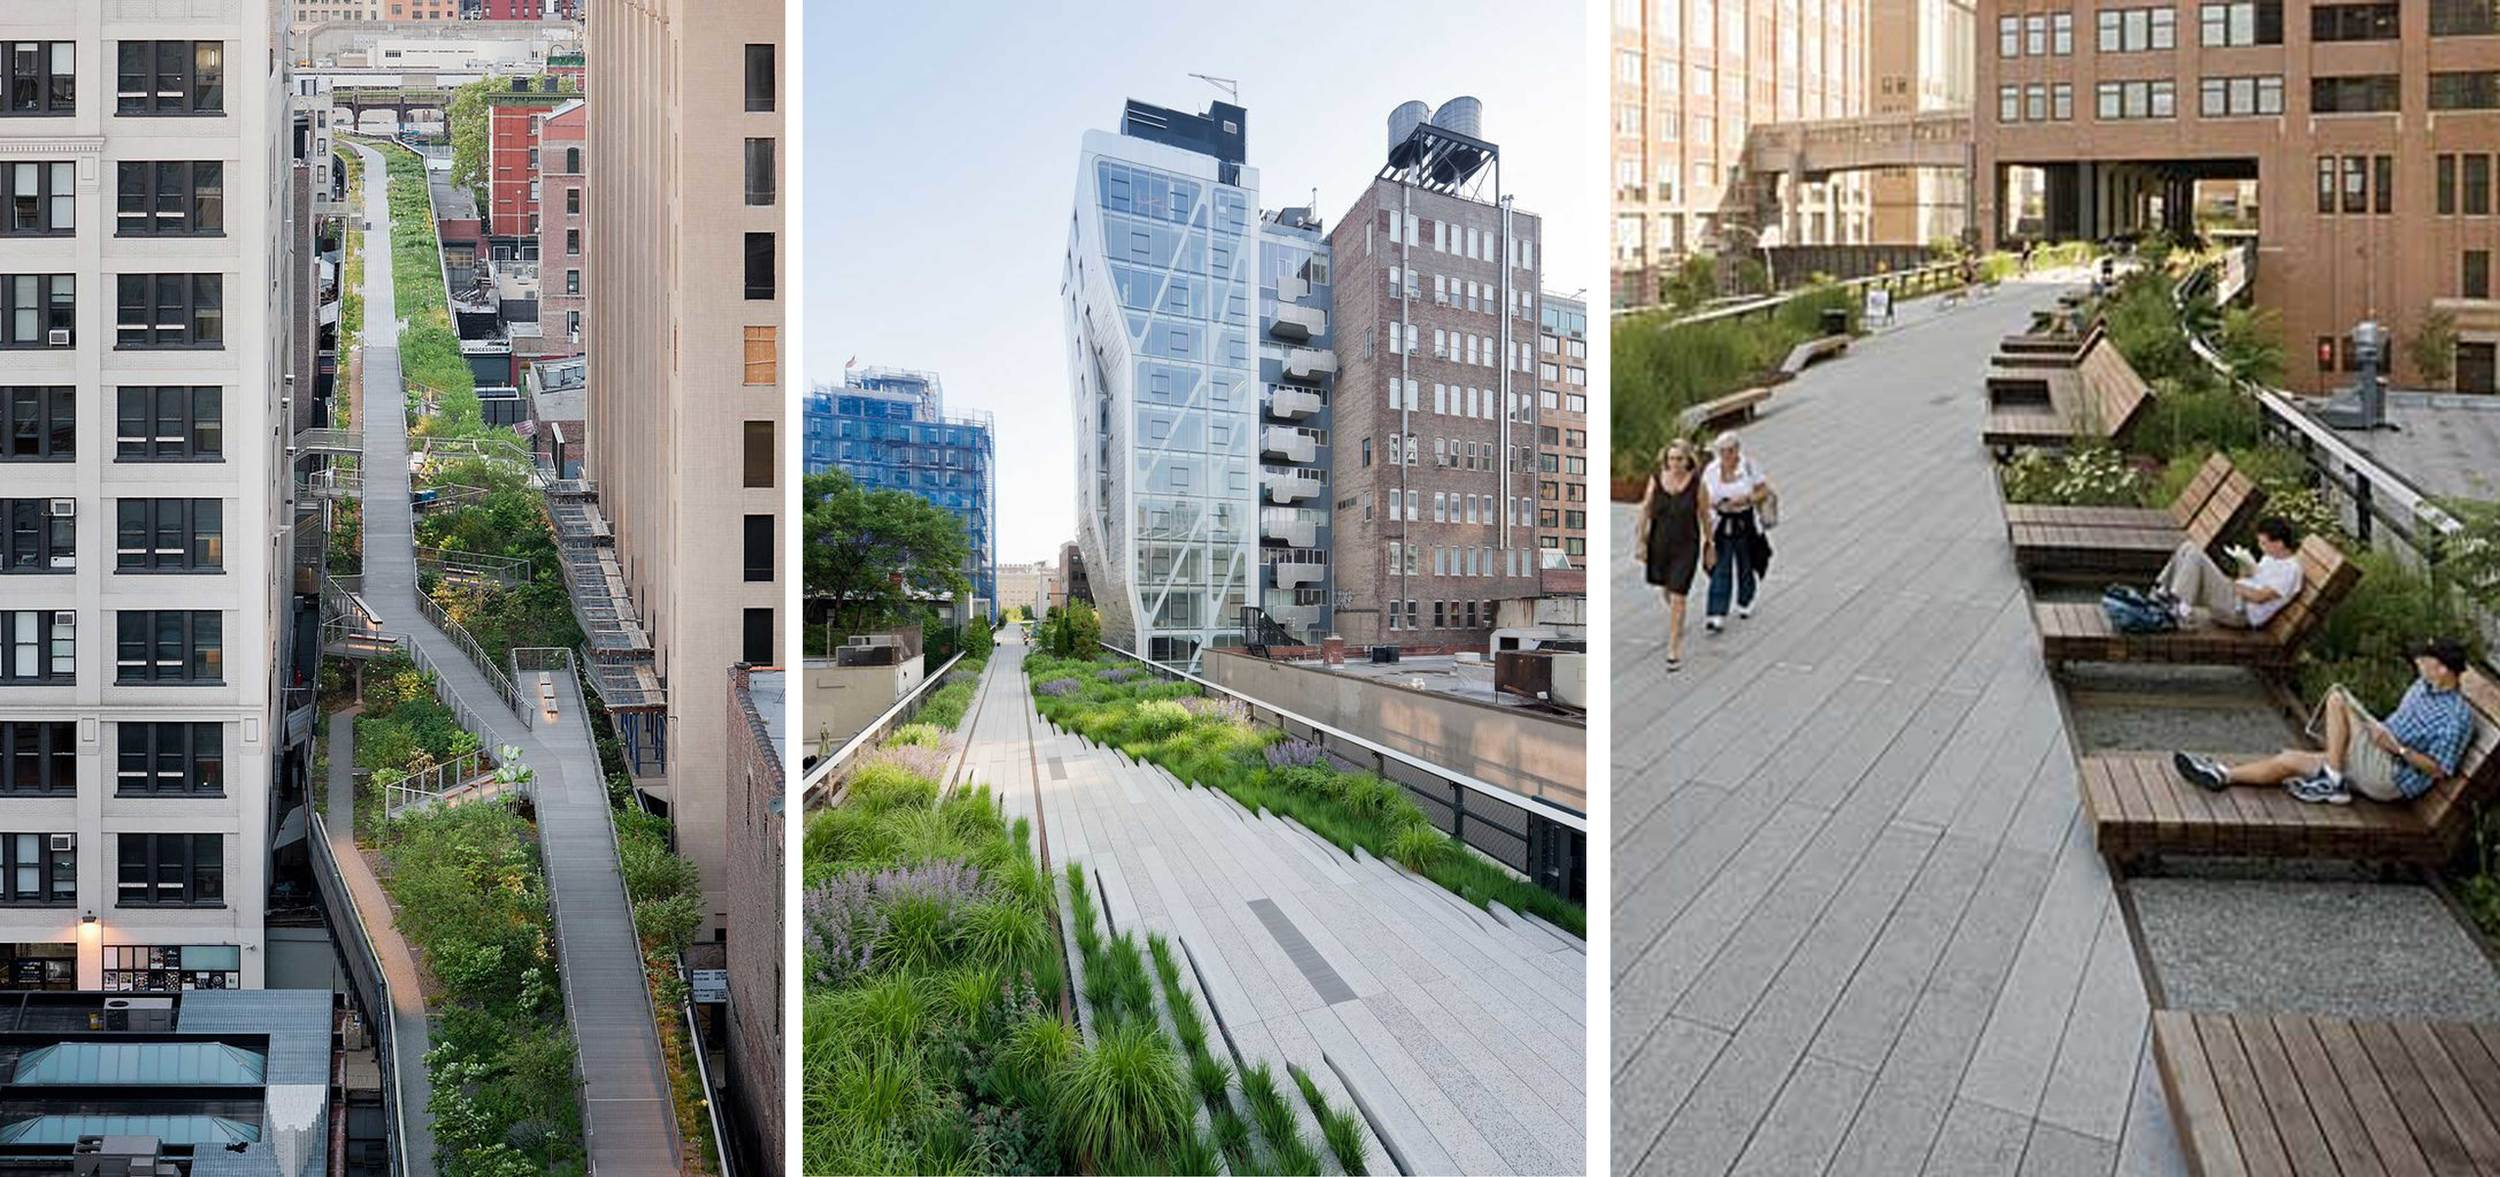 The High Line in New York is a beautifully landscaped elevated park built on top of the tracks of an abandoned railway. Image courtesy: Pinterest